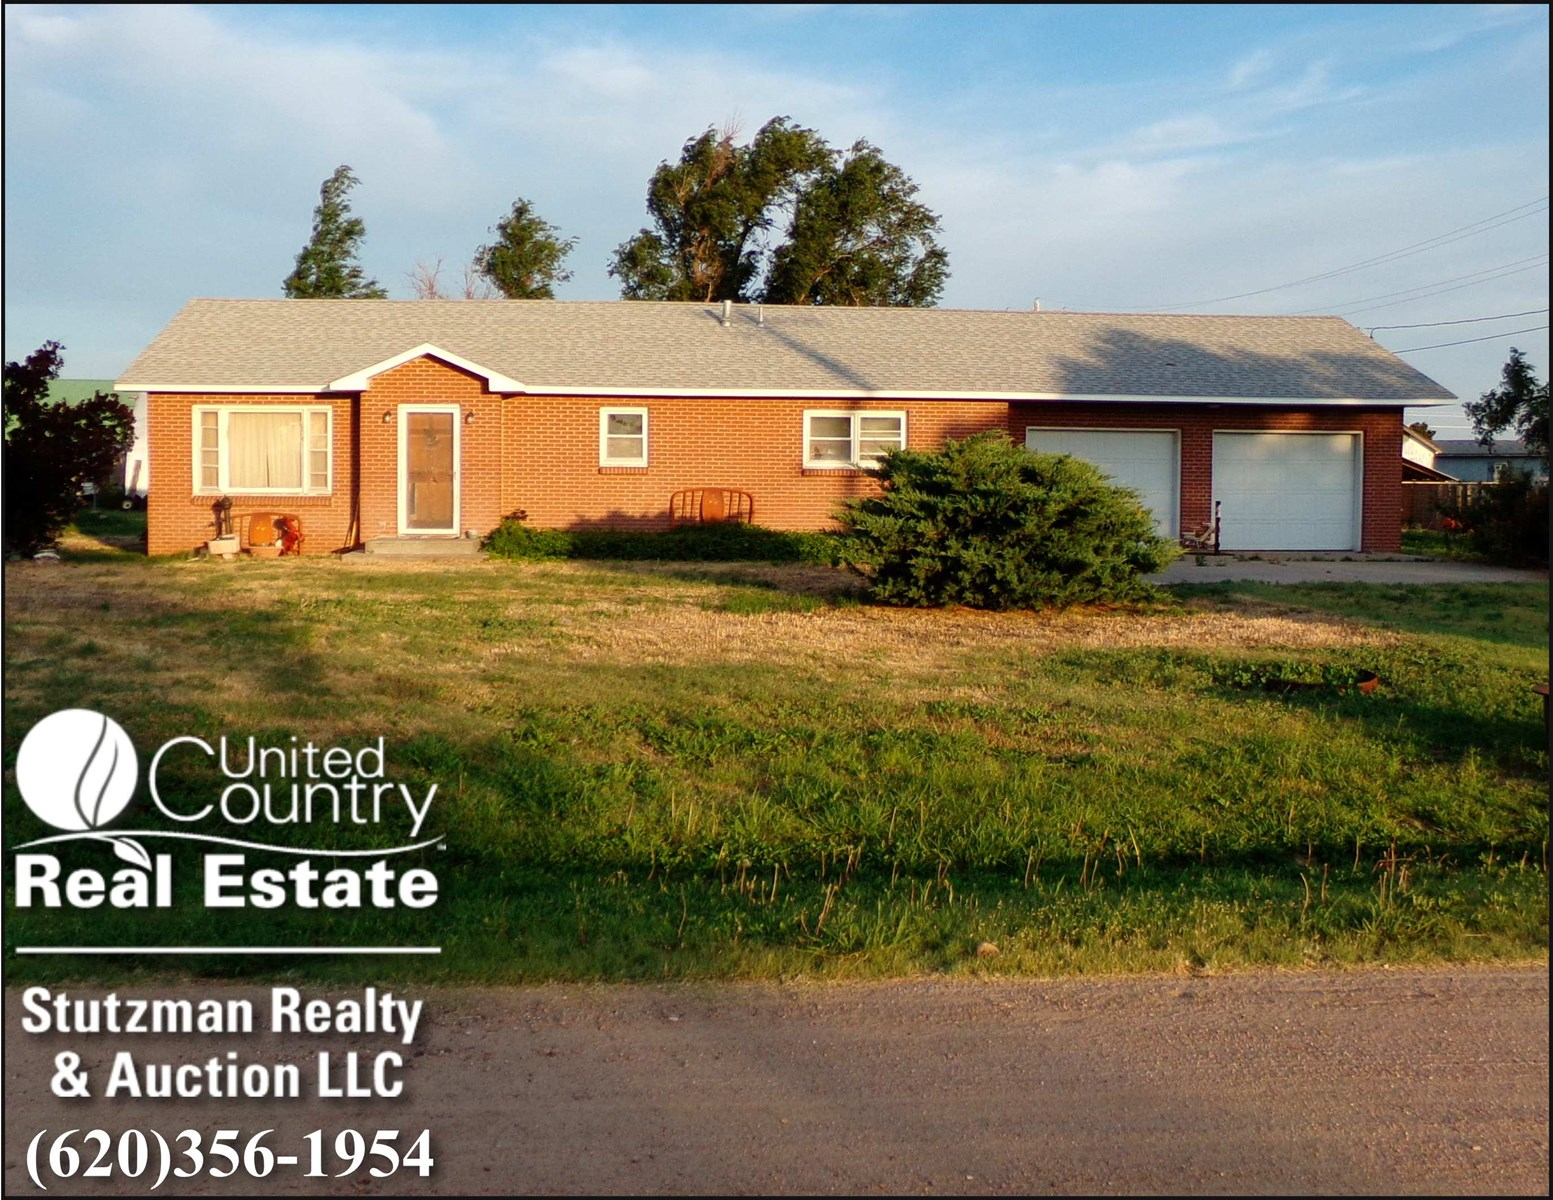 REAL ESTATE PRIVATE AUCTION - 204 N MONROE, MANTER, KS